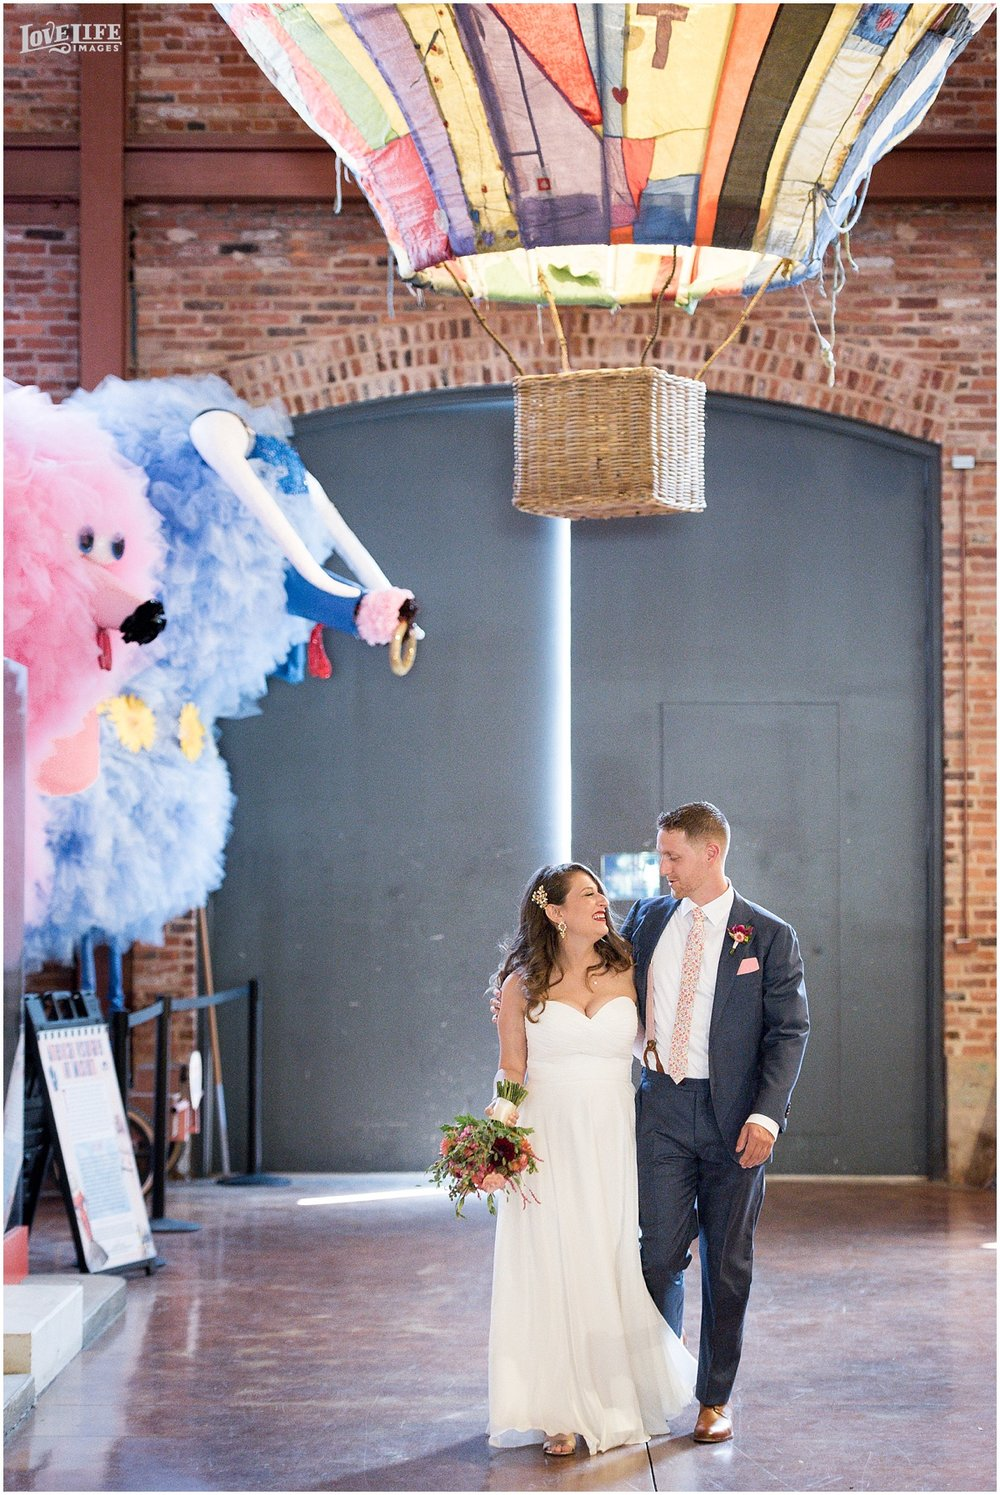 American Visionary Art Museum Baltimore Wedding_0002.jpg